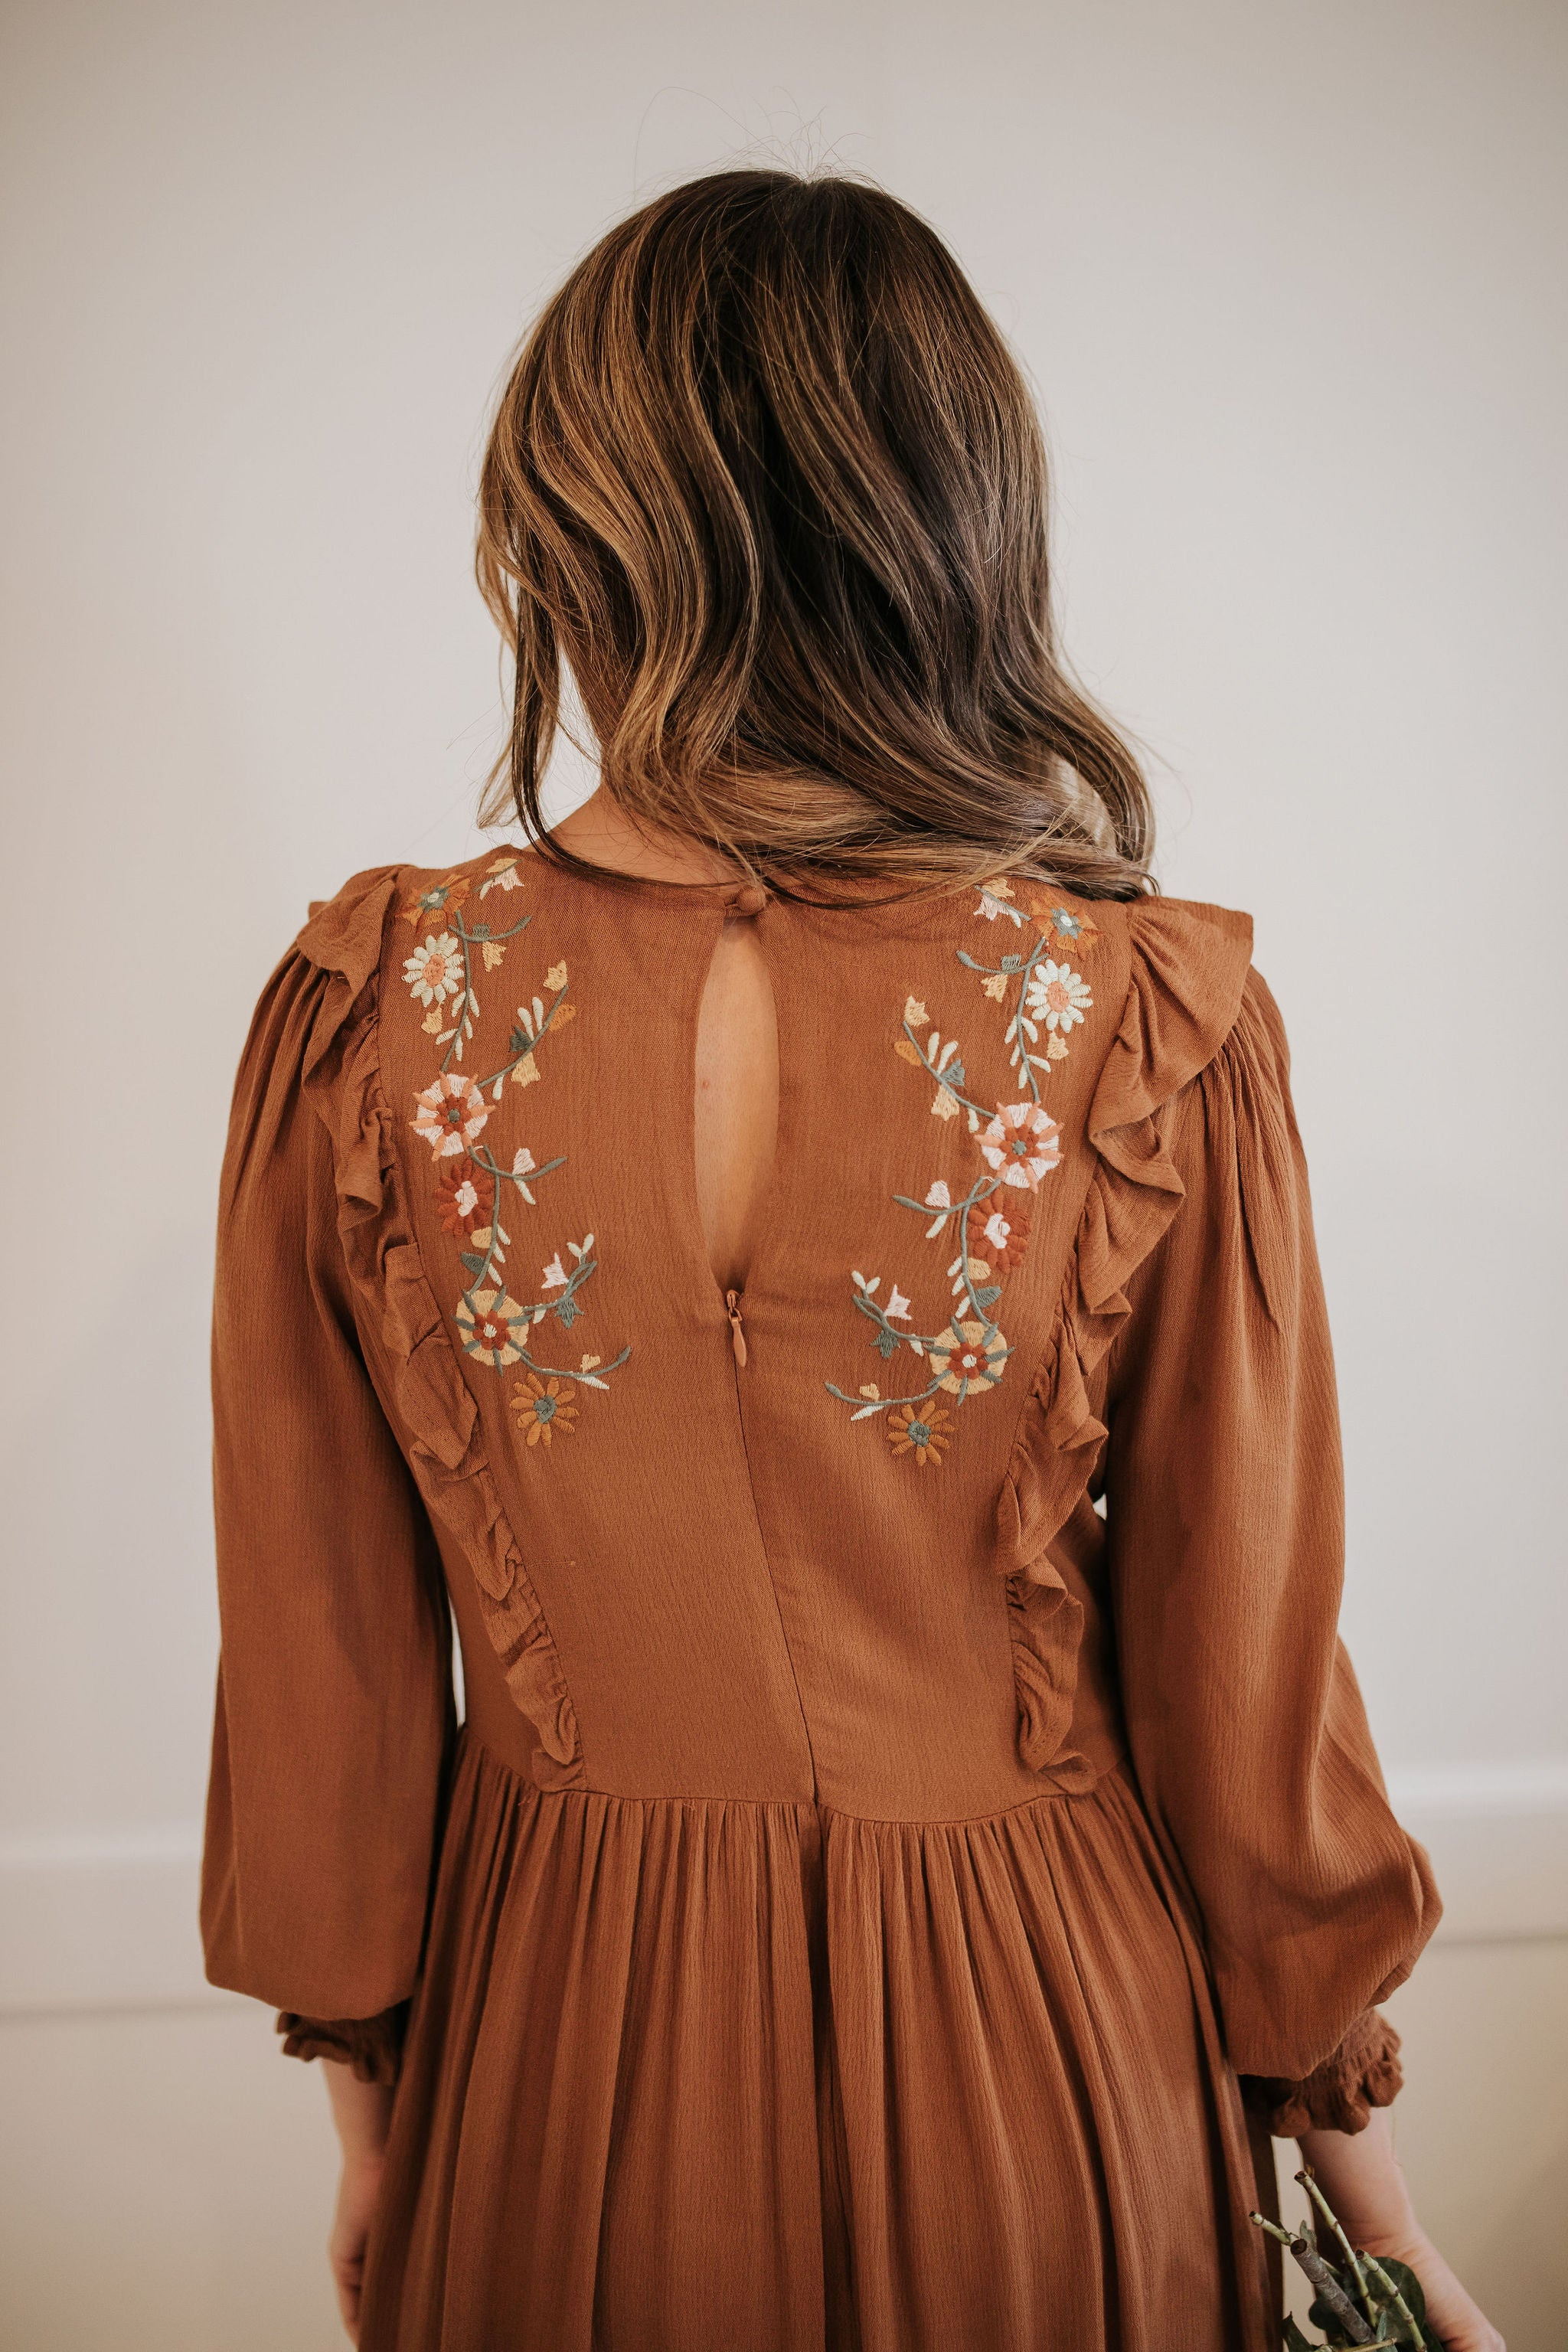 THE TYLEE EMBROIDERED MIDI DRESS IN TOFFEE